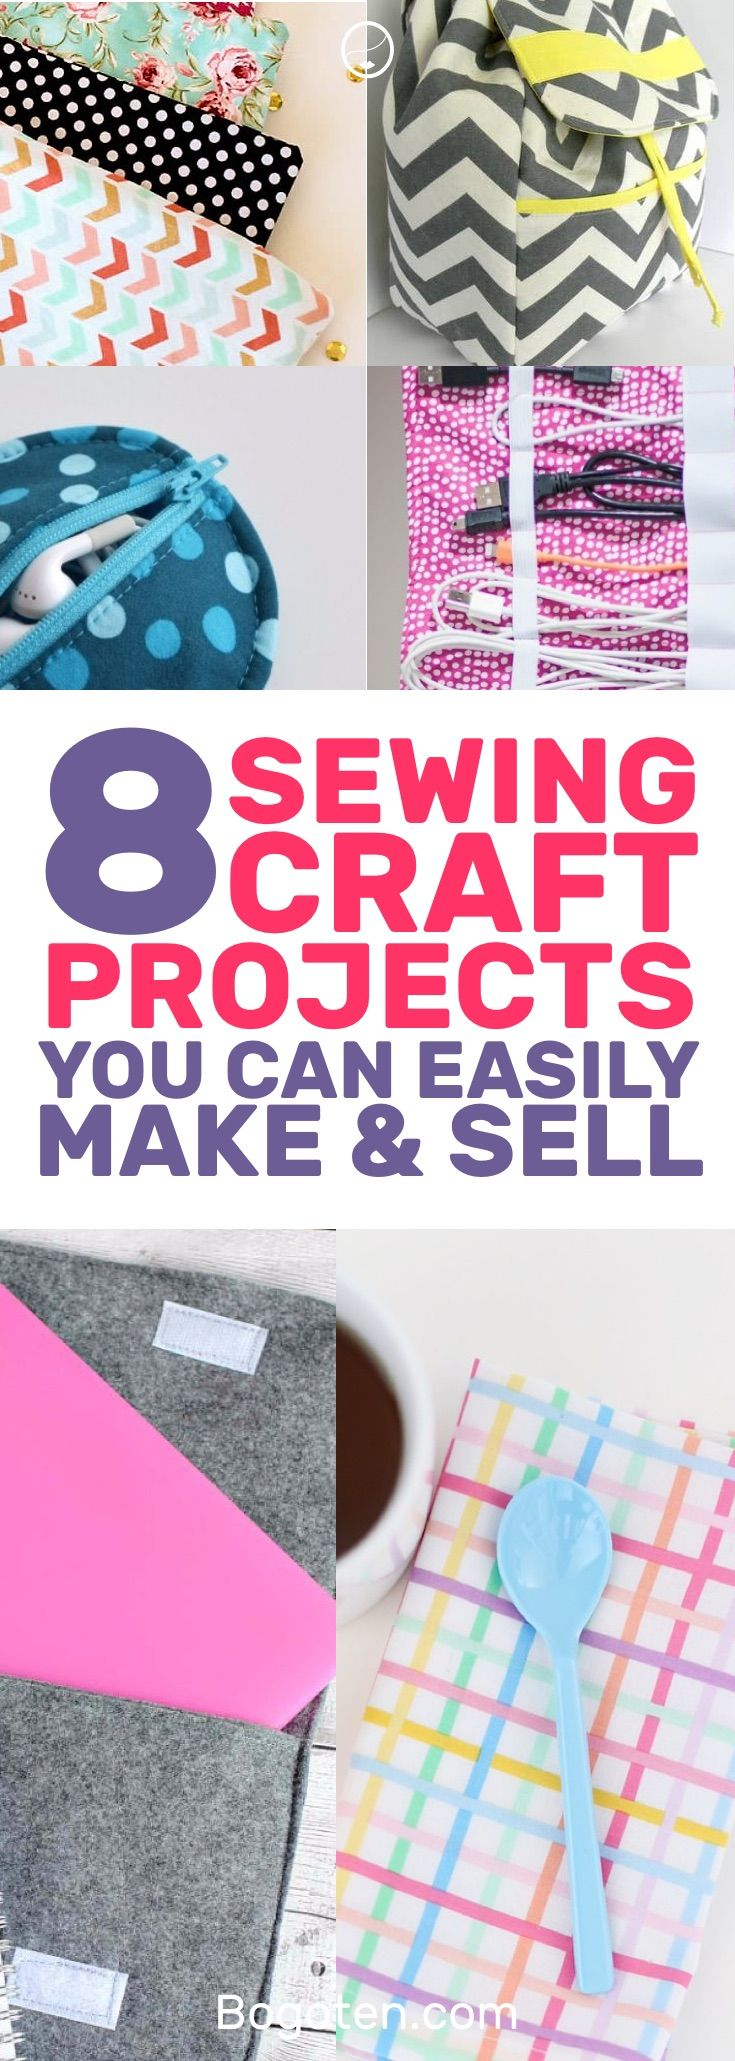 Looking for some easy things to sew so you can get your feet wet in the DIY world? These simple craft projects will get you started. #DIY #Sewing #Crafts